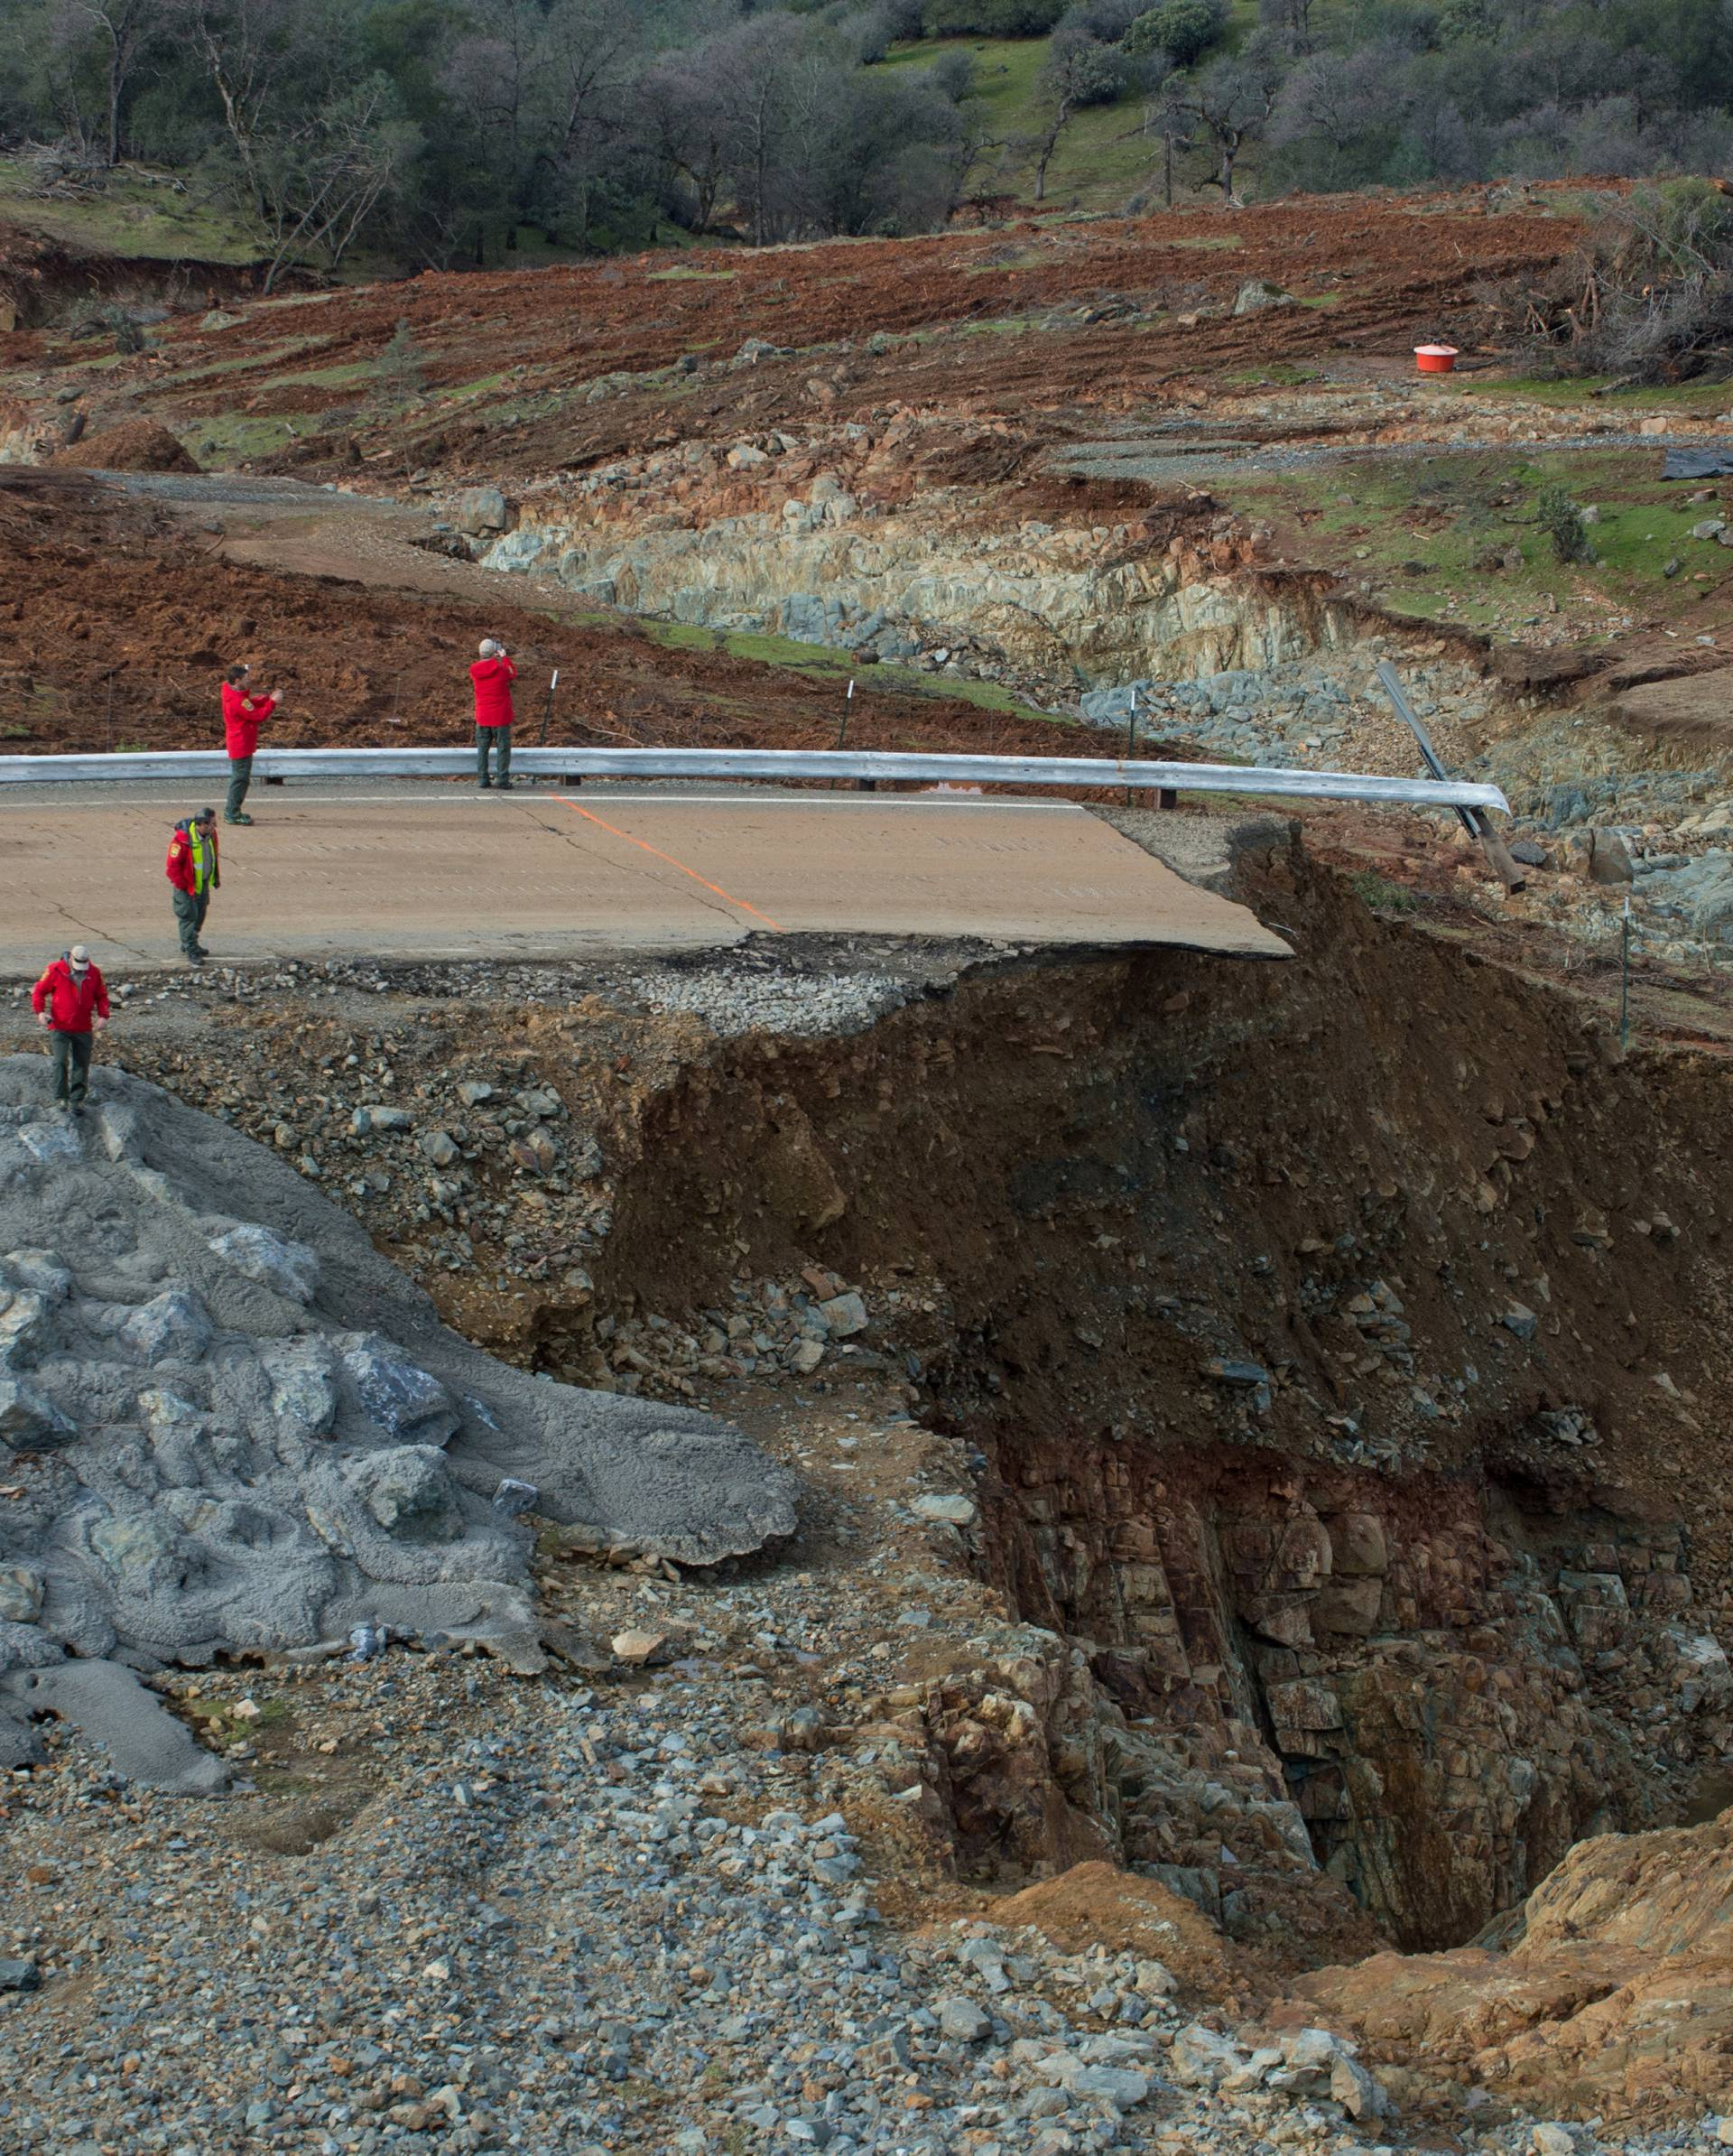 Handout photo of California Department of Water Resources crews inspect and evaluate the erosion just below the Lake Oroville Emergency Spillway site after lake levels receded, in Oroville